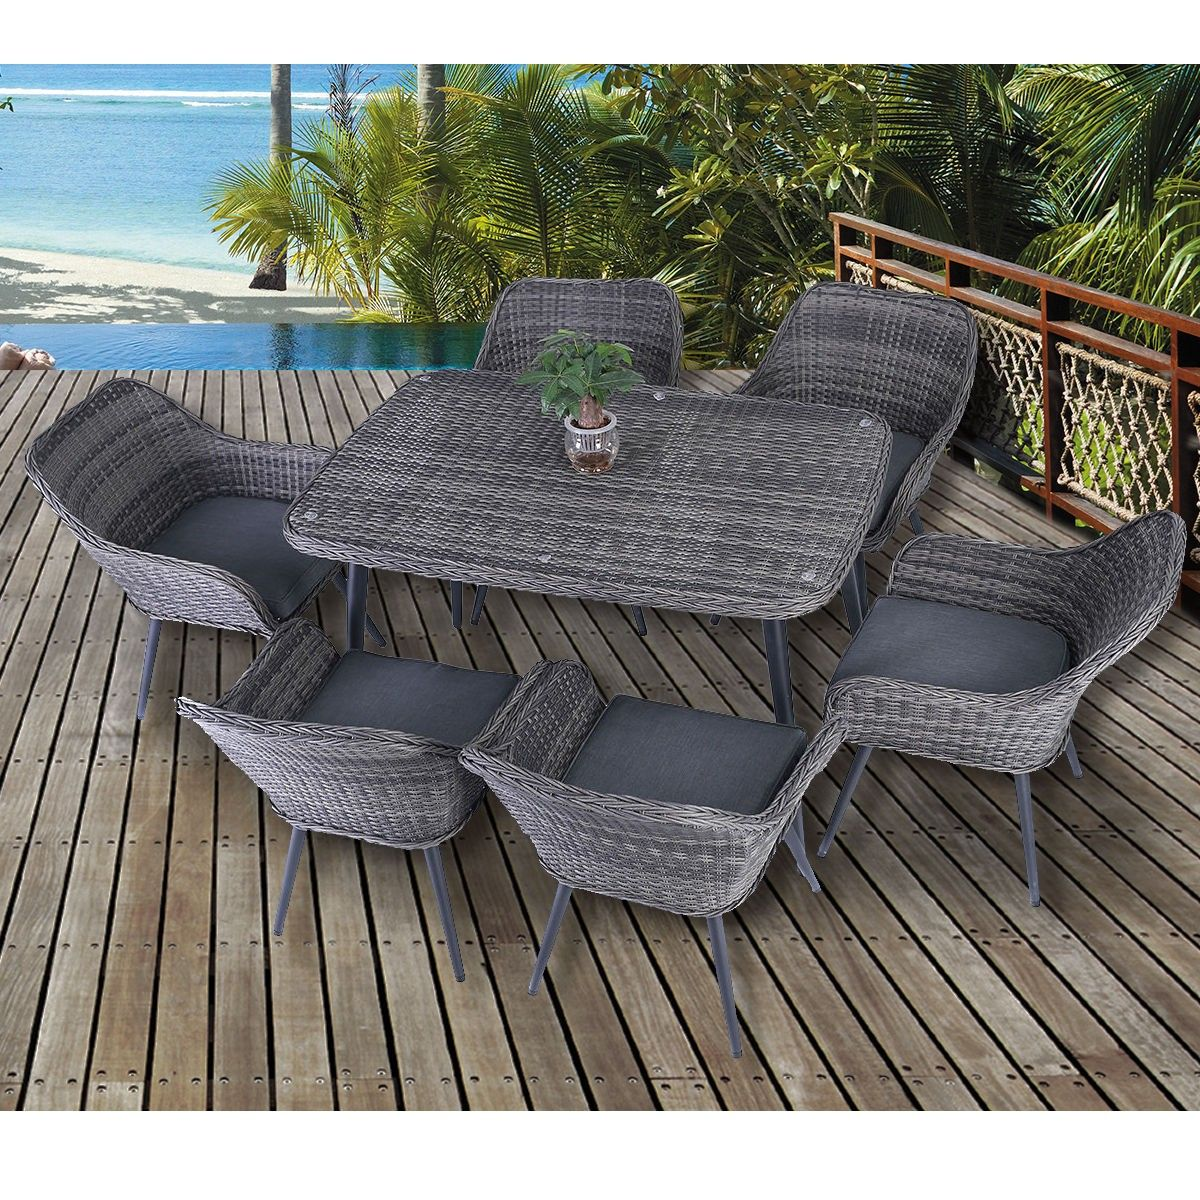 Costway pcs patio rattan wicker table chairs sofa dining furniture